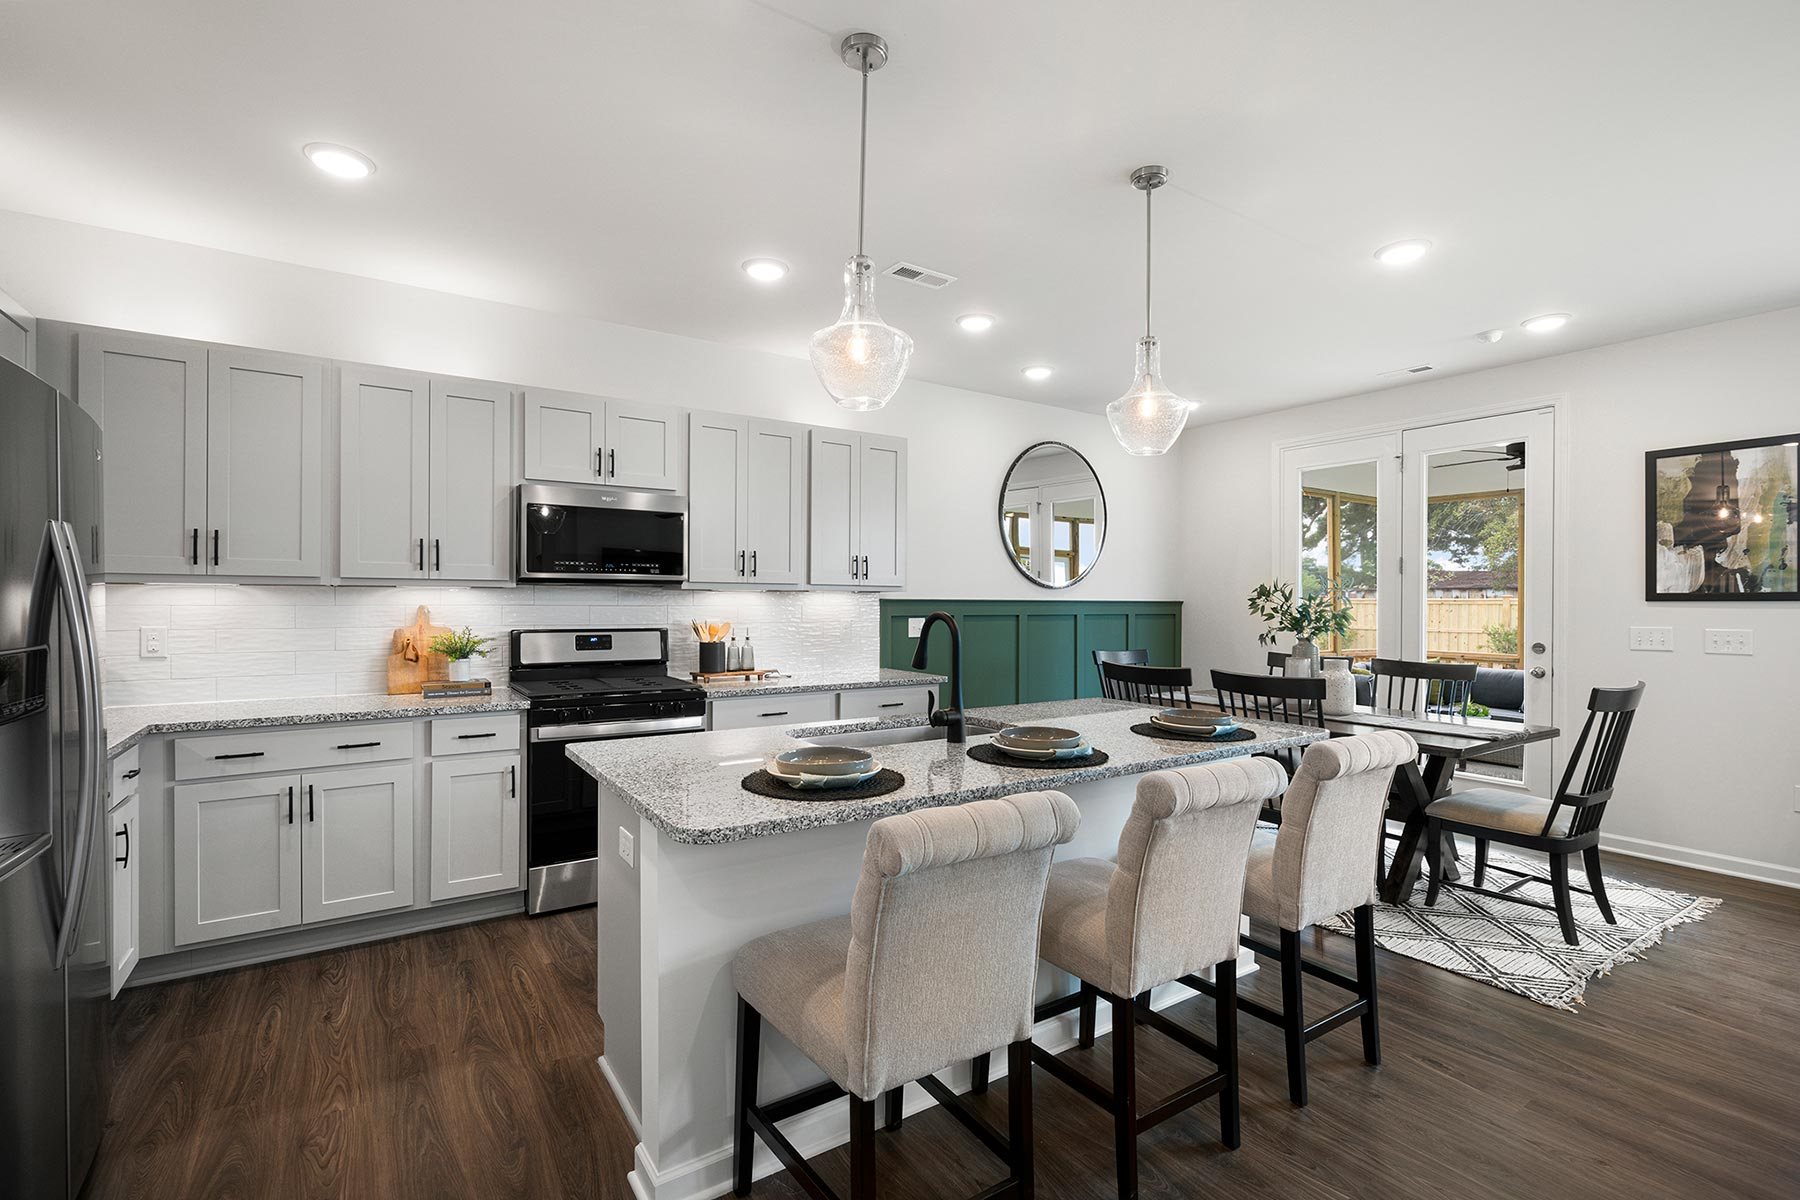 Briar Gate Kitchen in Fuquay-Varina North Carolina by Mattamy Homes